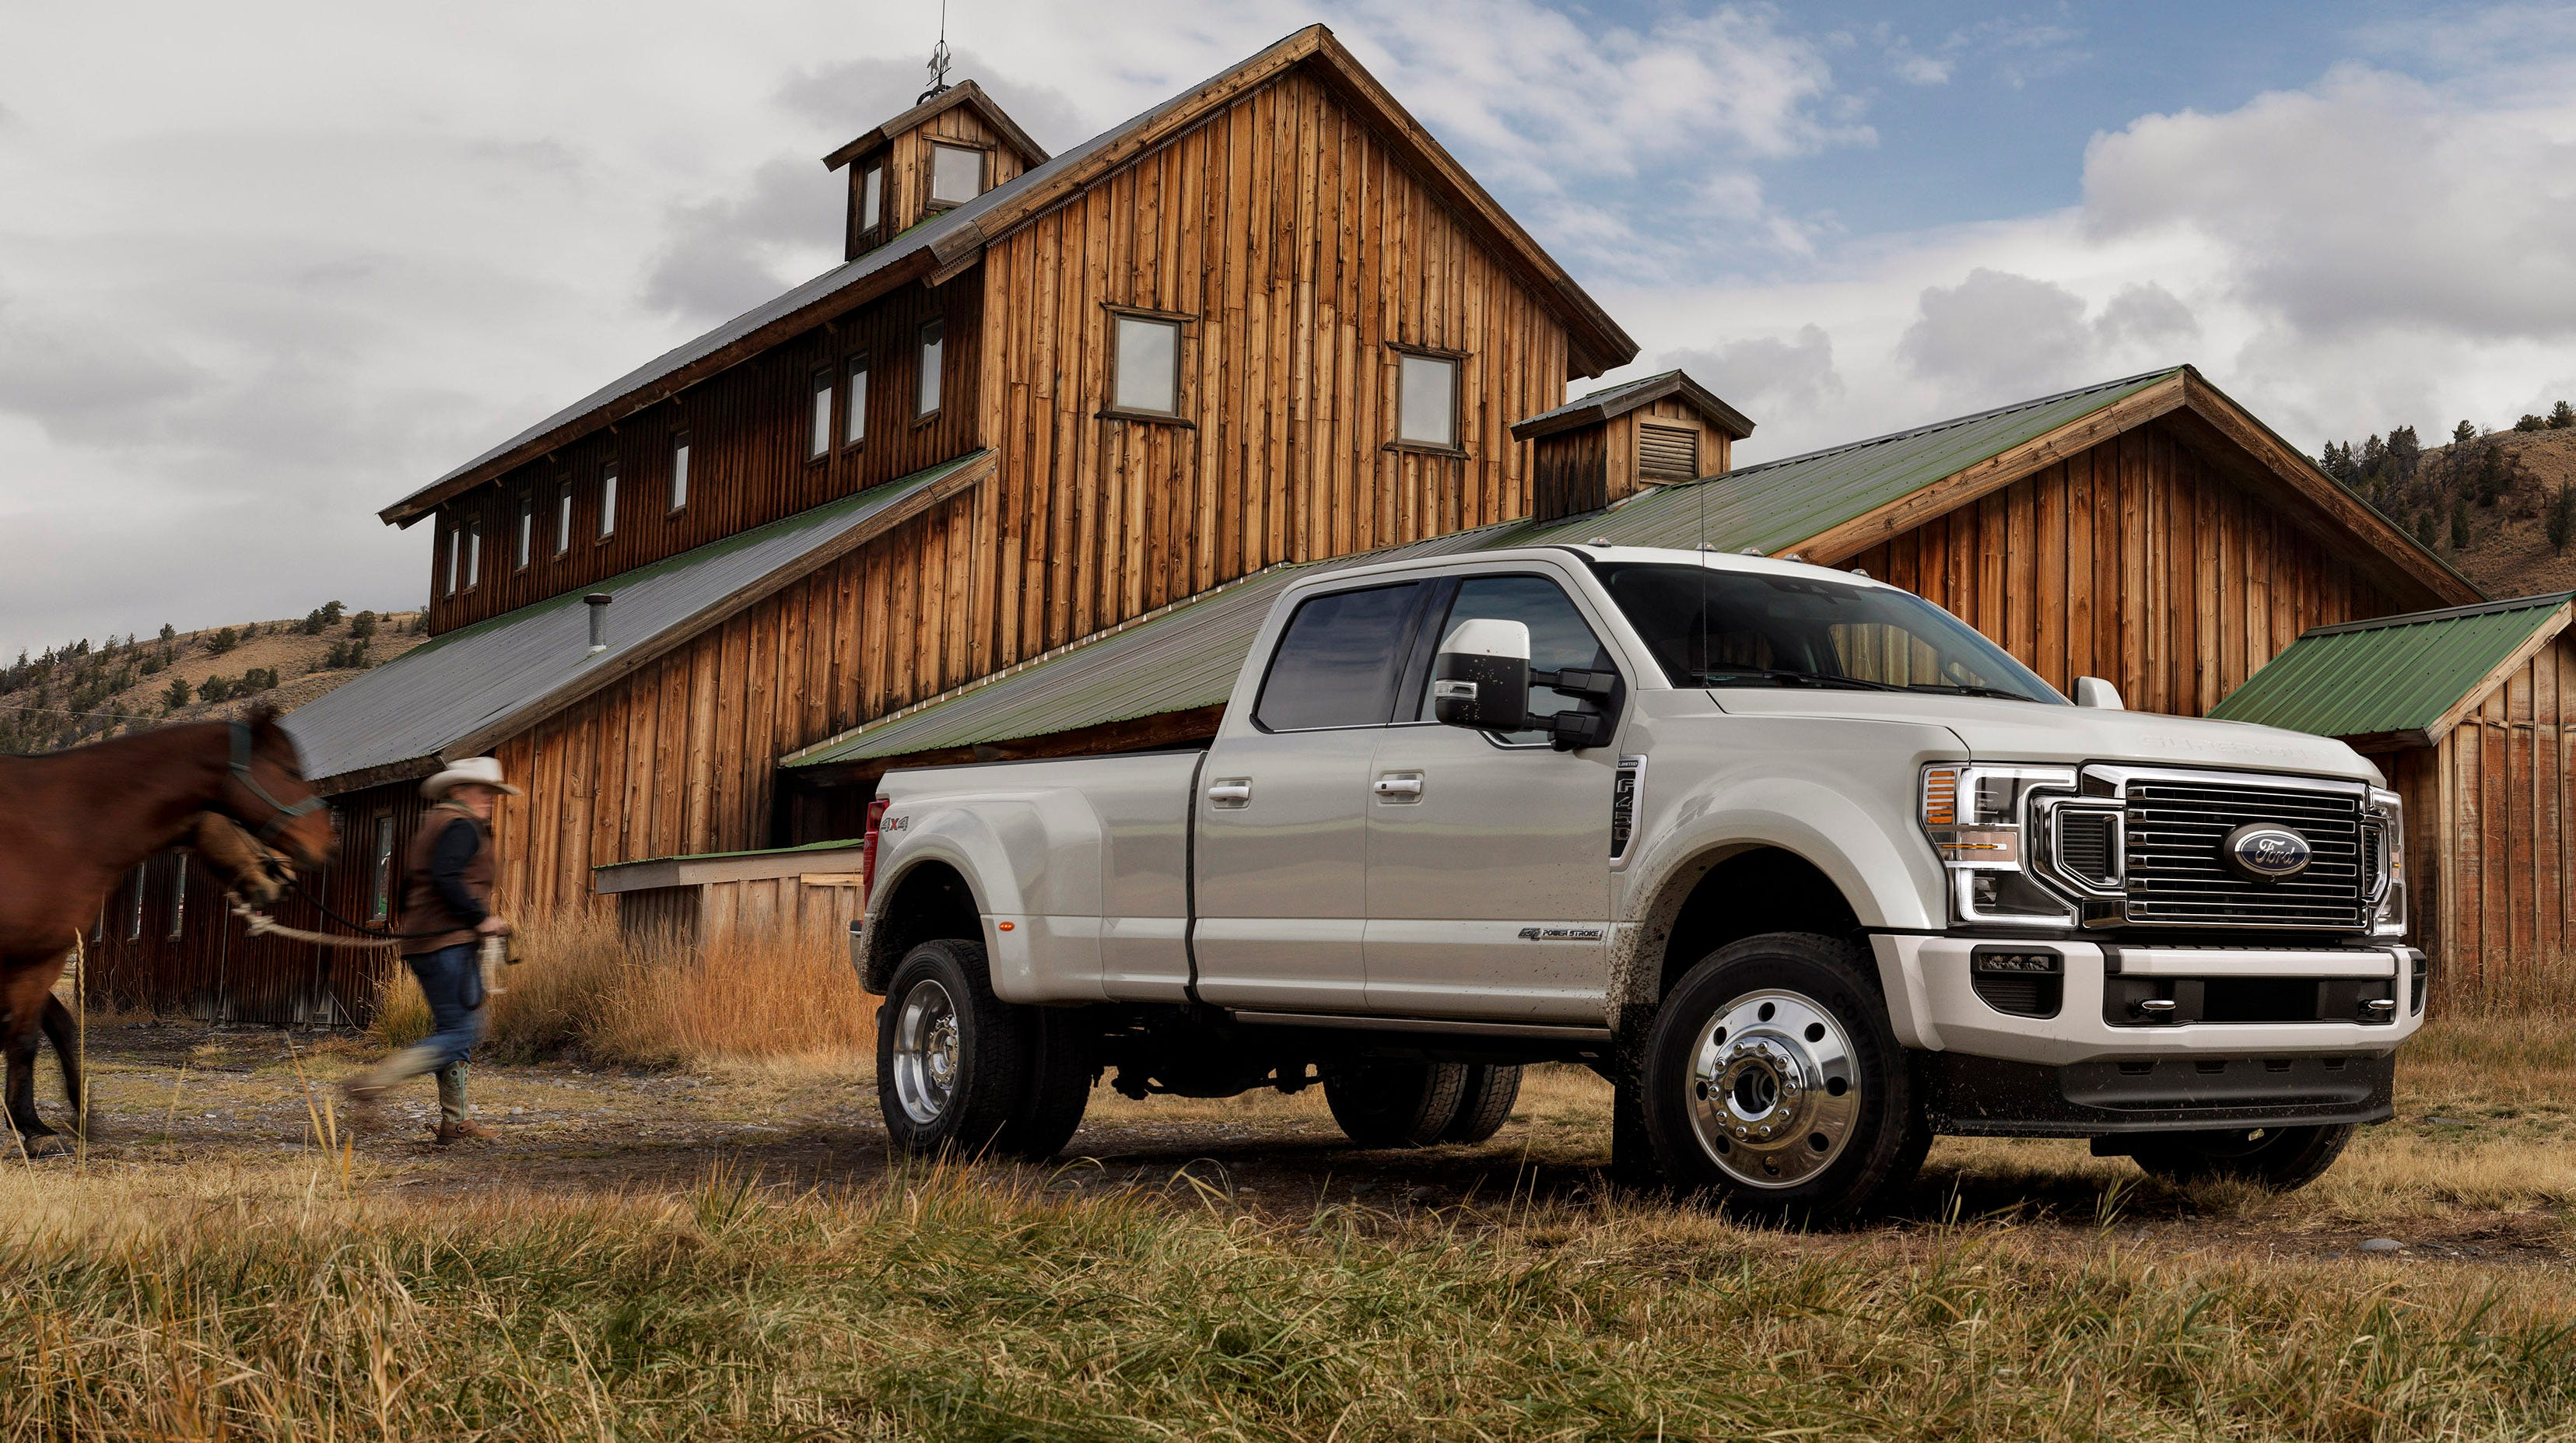 Ford's 2020 Super Duty F-450 pickup.